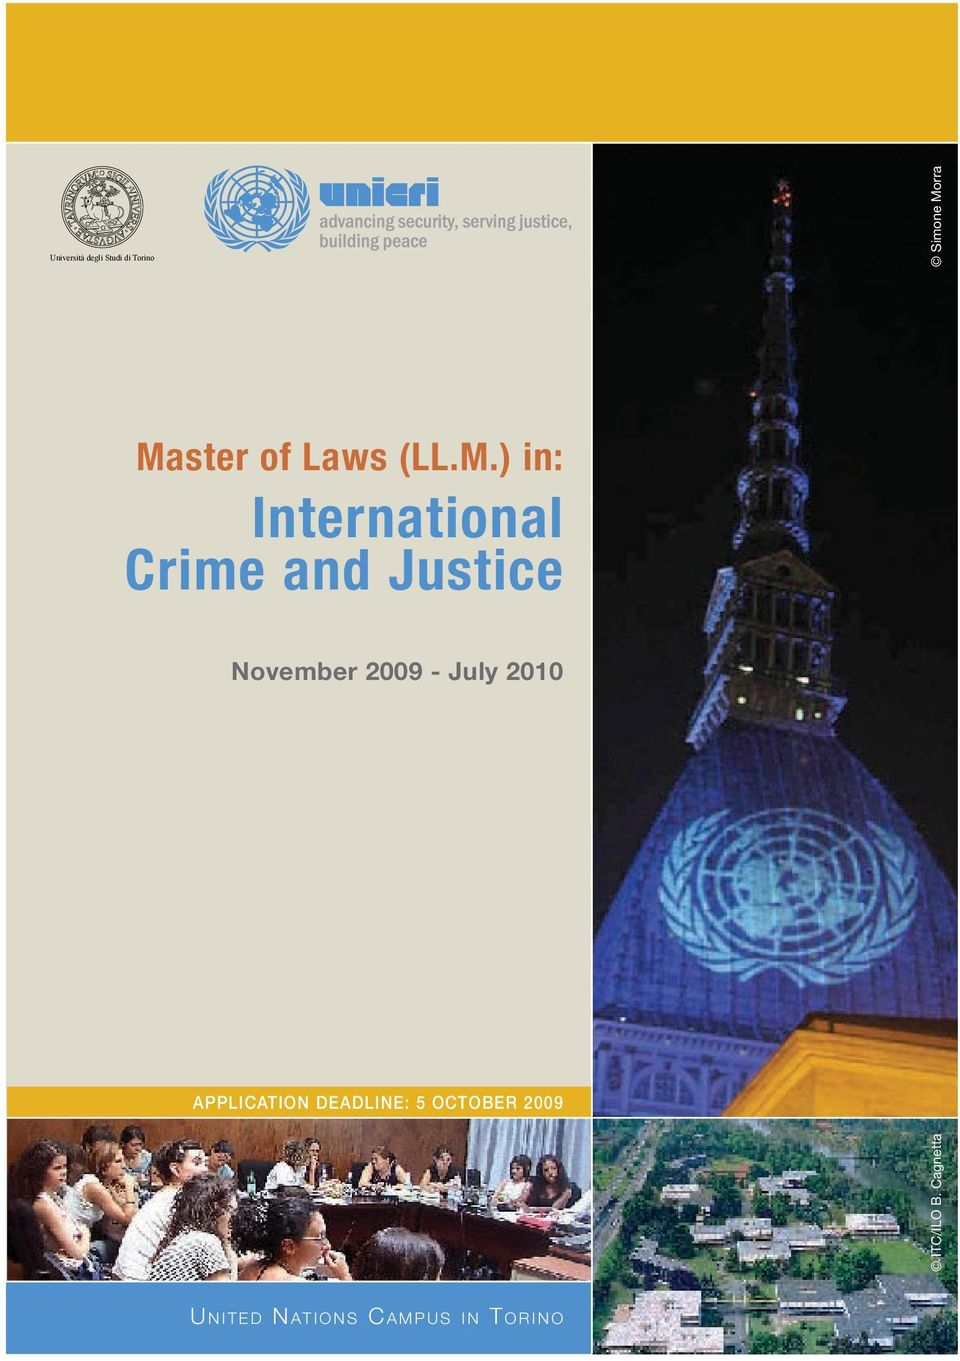 ) in: International Crime and Justice November 2009 -